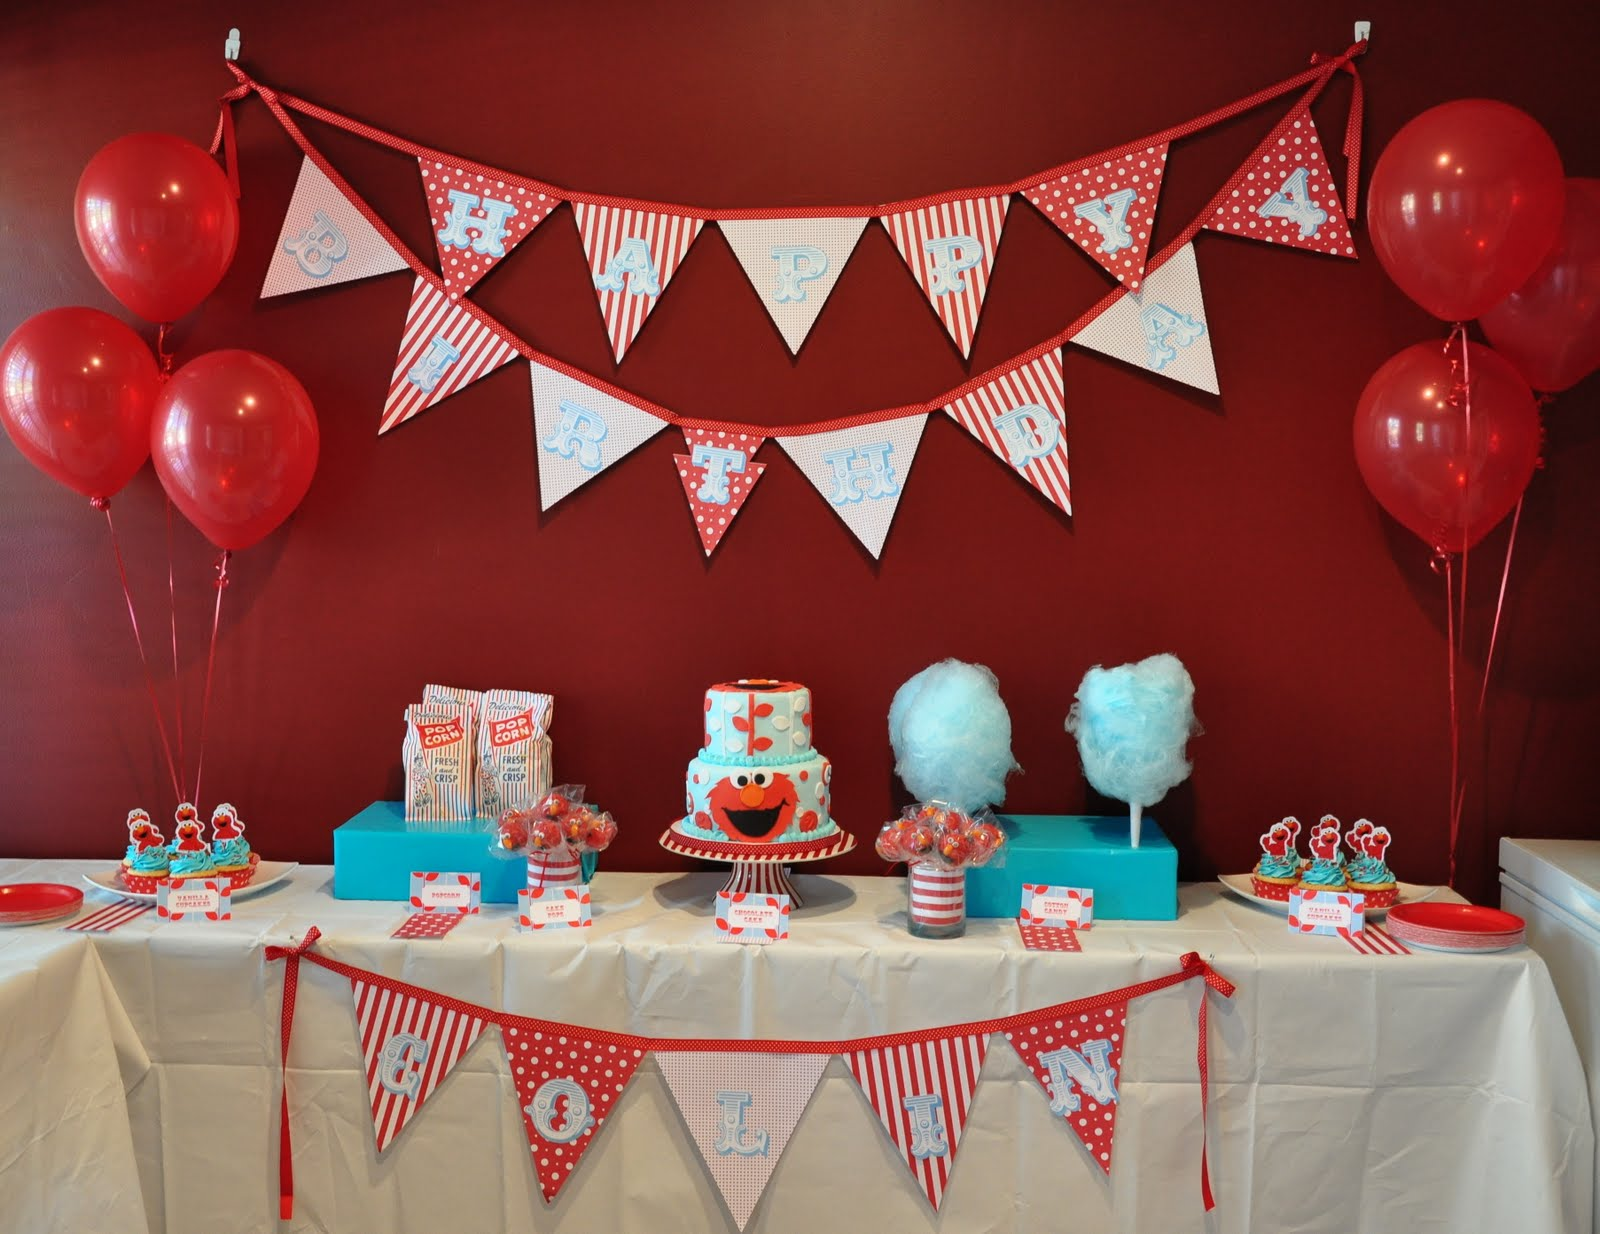 Im Leaning More Toward An Elmo Themed Party And This One Gave Me Some Great Ideas I Like The Colors They Chose Cake It Super Cute